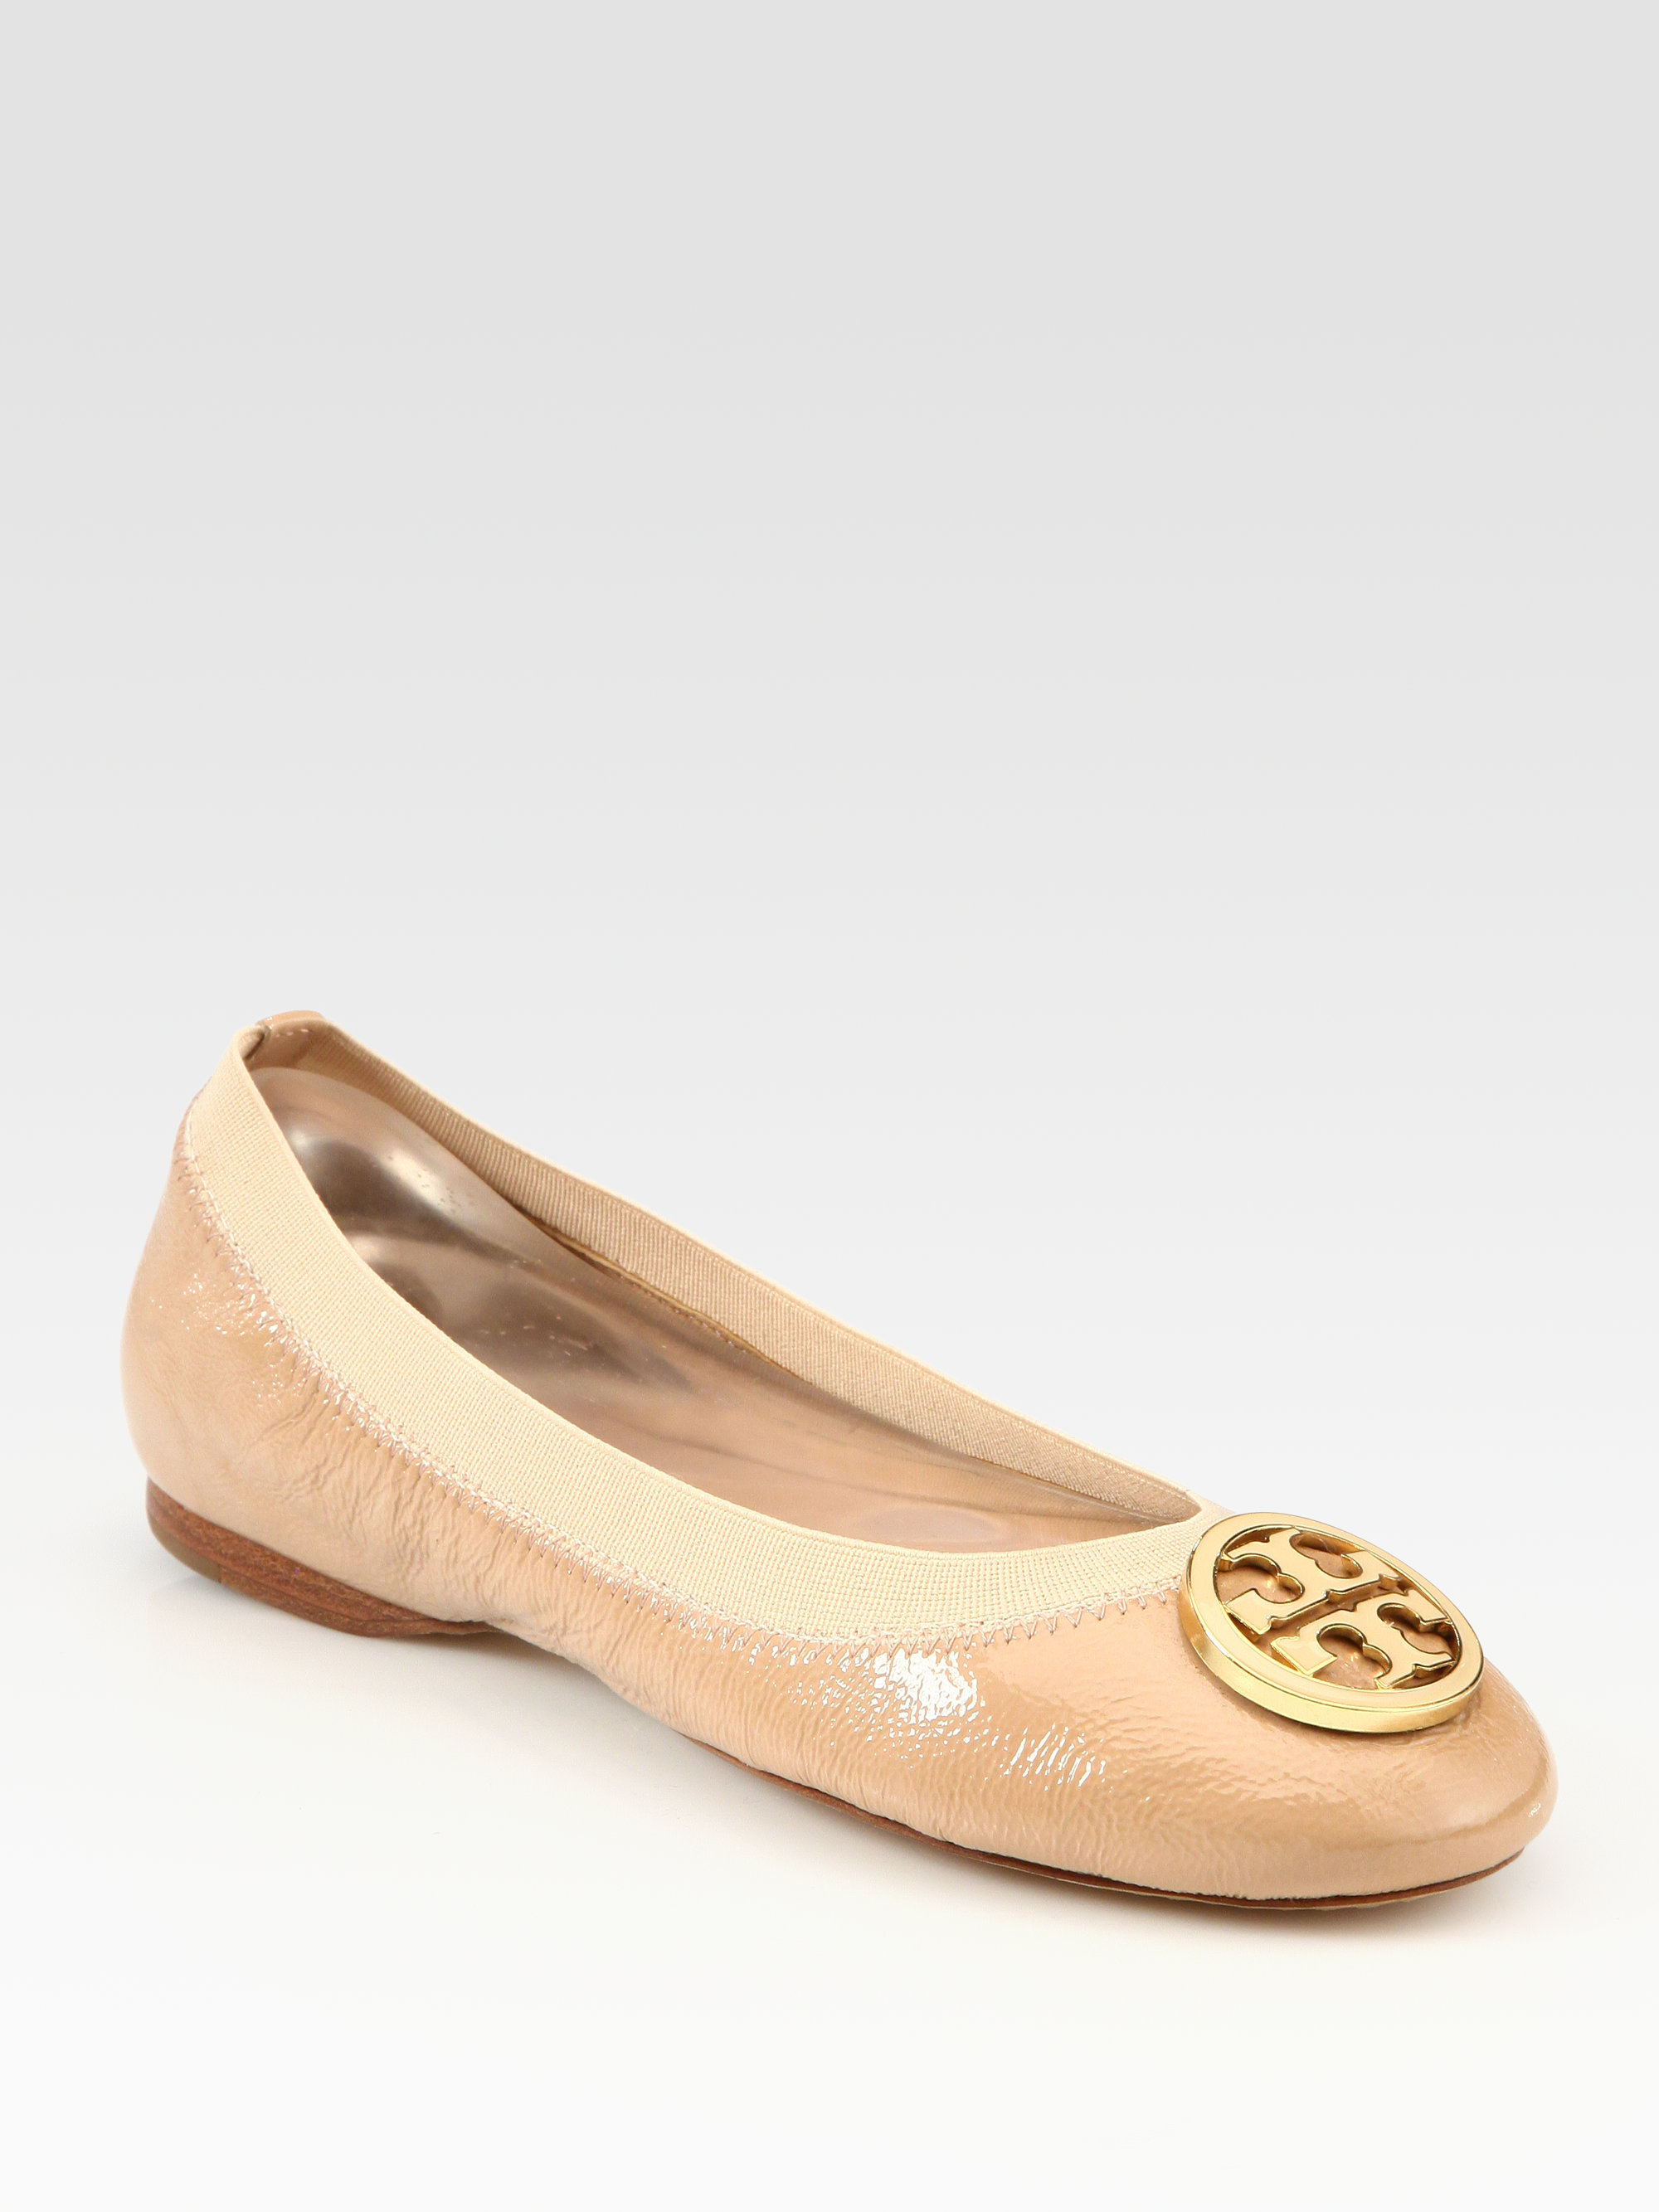 f0ee6cdf8a75 ... italy lyst tory burch caroline patent leather logo ballet flats in  natural 8145f 42b0d